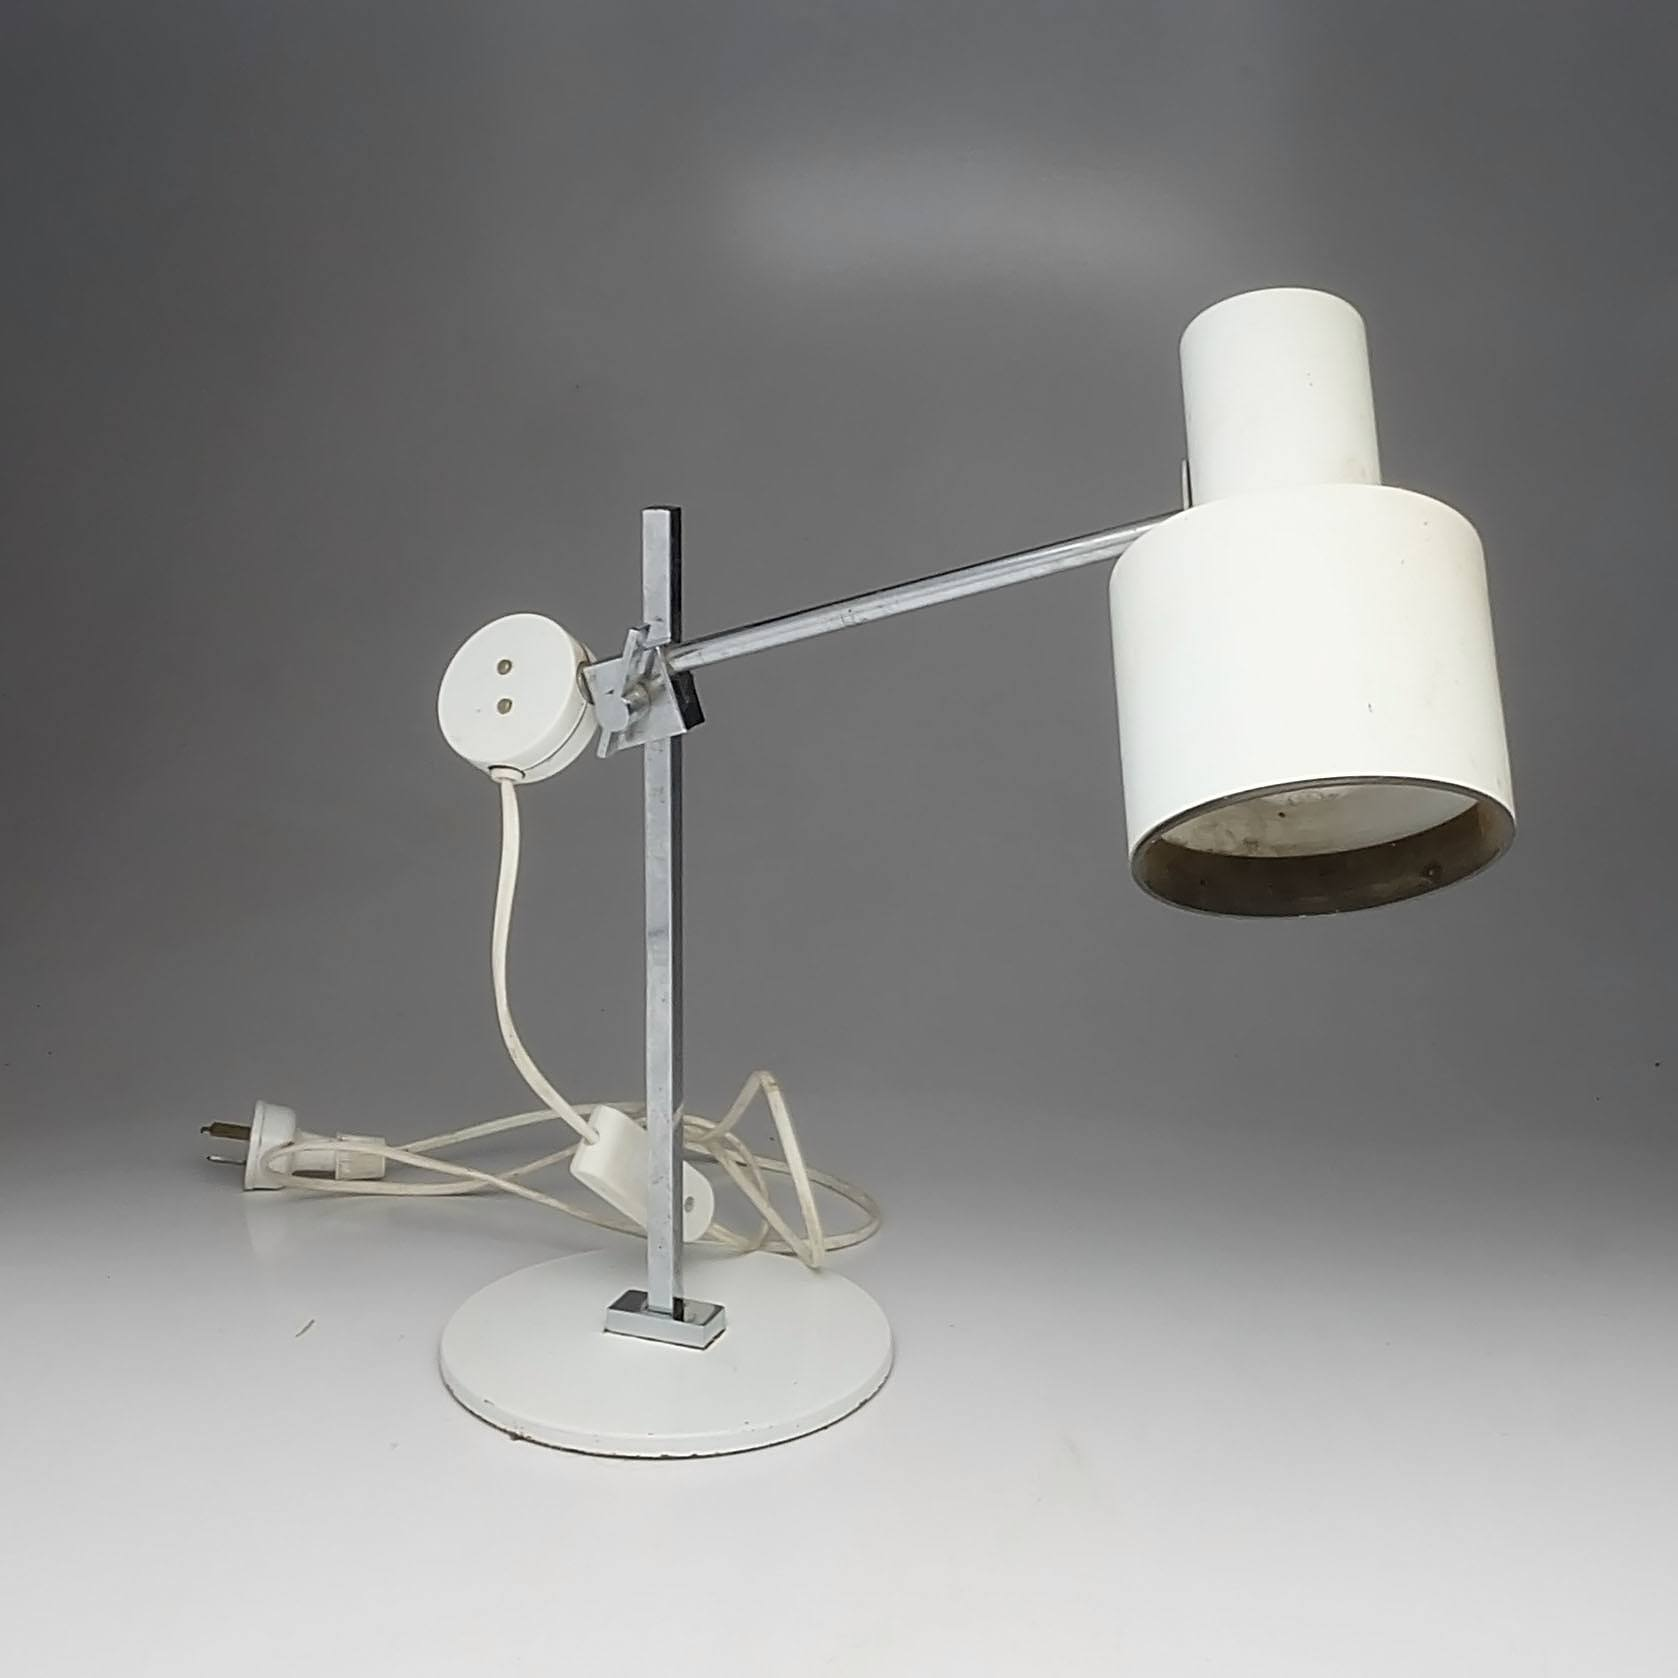 'Danish Chromed and Painted Metal Articulated Table Lamp'